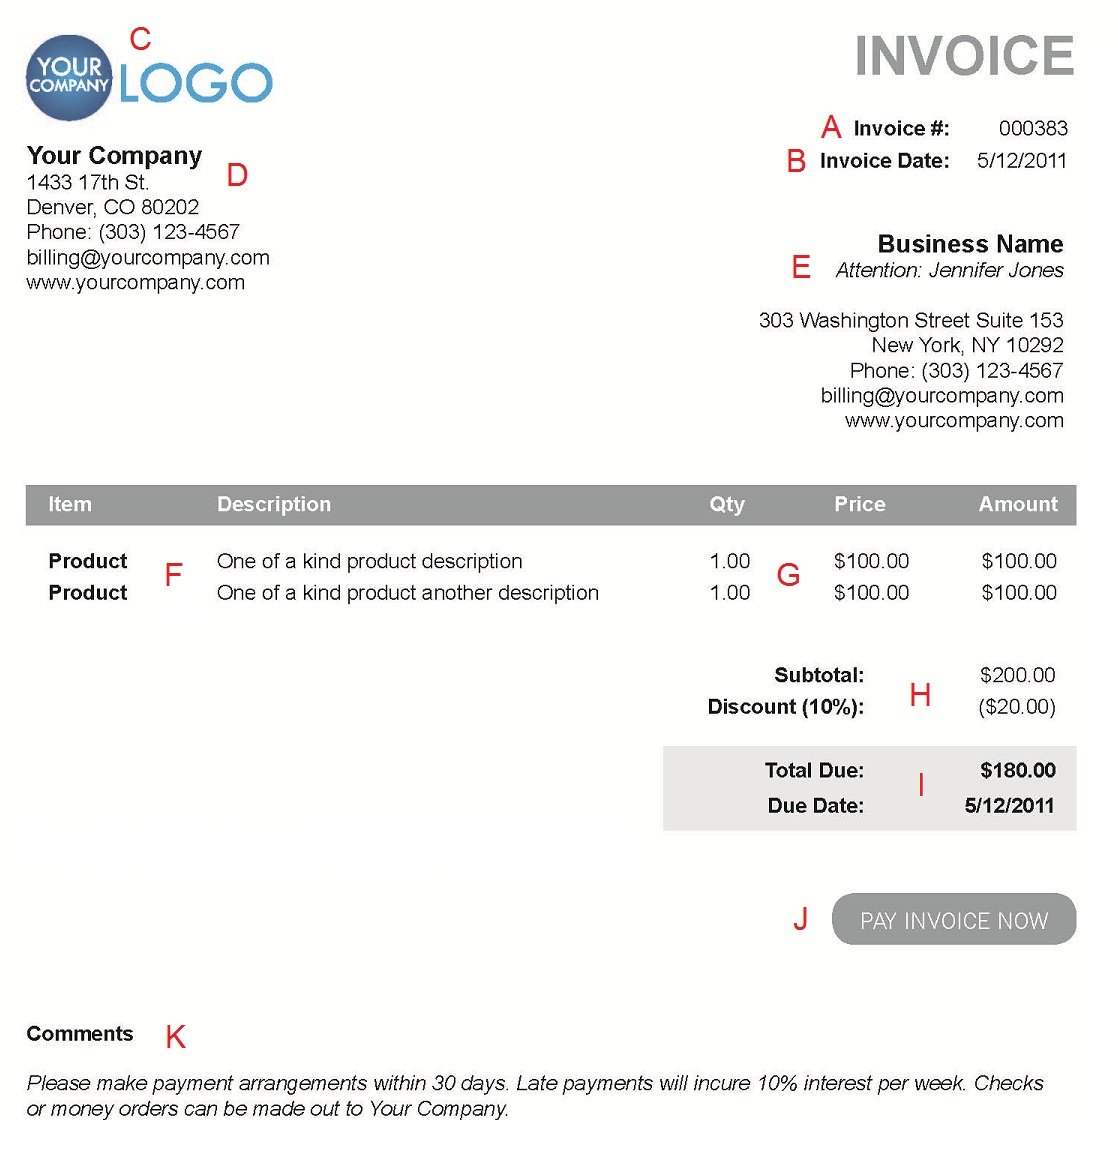 Barneybonesus  Wonderful The  Different Sections Of An Electronic Payment Invoice With Extraordinary A  With Lovely Proforma Invoice Word Also How To Write Out An Invoice In Addition Best Program For Invoices And Credit Note For Invoice As Well As Billing And Invoice Additionally Terms And Conditions On Invoice From Paysimplecom With Barneybonesus  Extraordinary The  Different Sections Of An Electronic Payment Invoice With Lovely A  And Wonderful Proforma Invoice Word Also How To Write Out An Invoice In Addition Best Program For Invoices From Paysimplecom